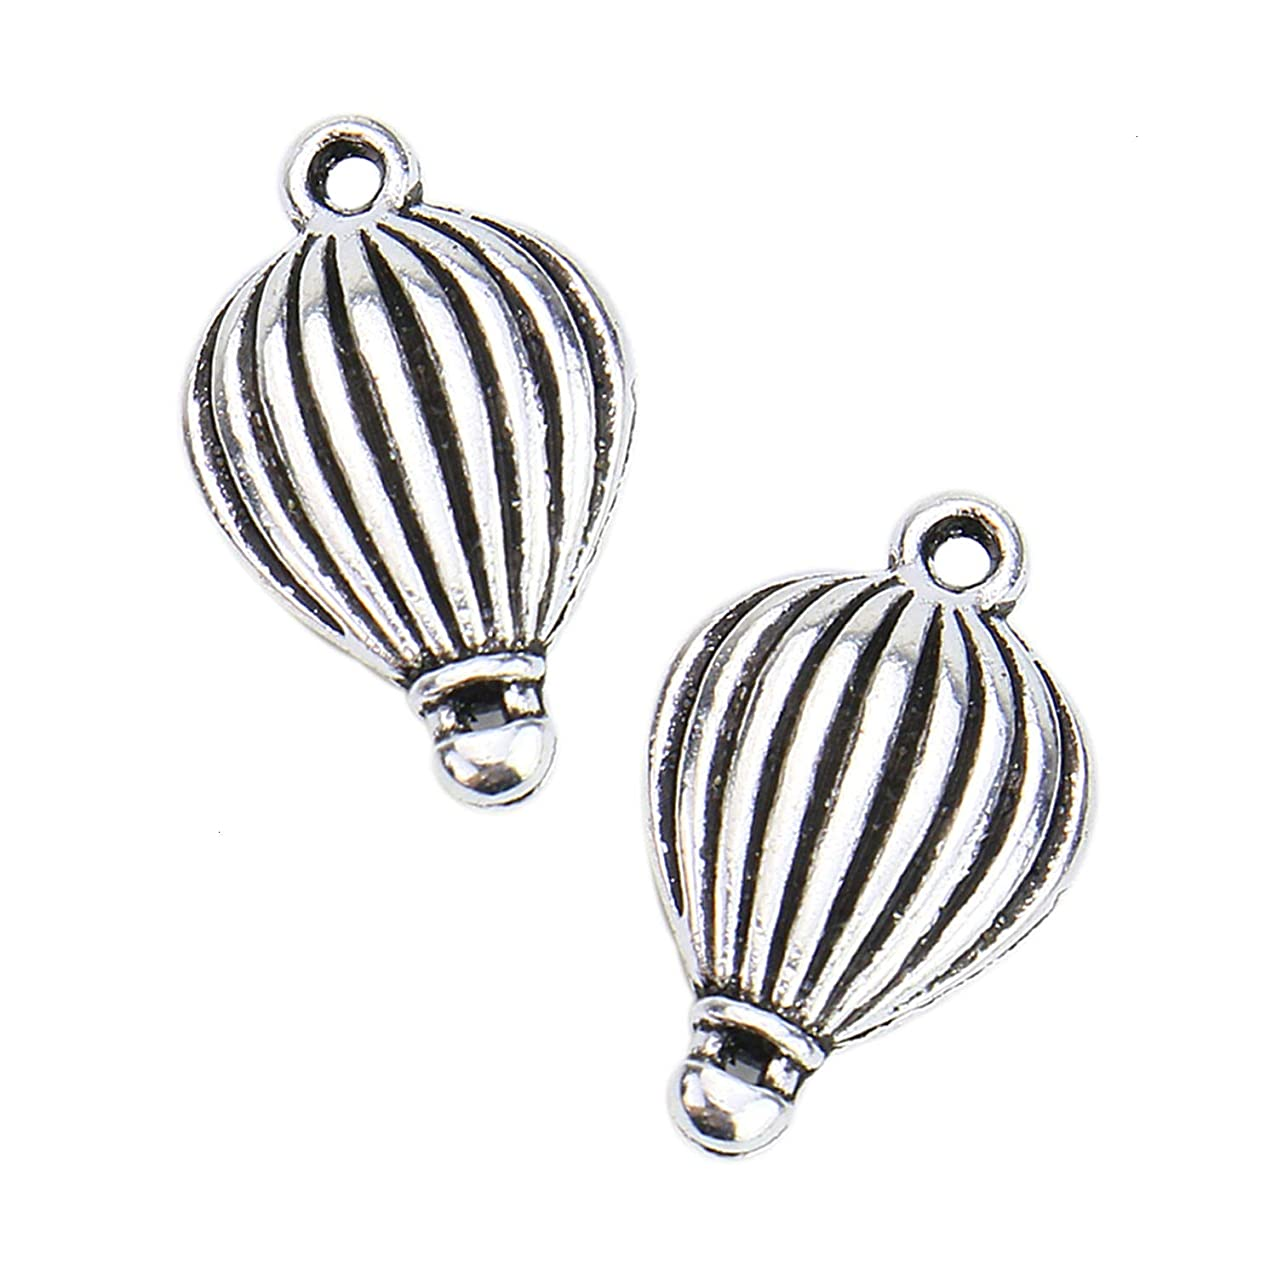 Monrocco Hot Air Balloon Charm Bead Pendant for Jewelry Making Key Chain Crafting 21x13mm.